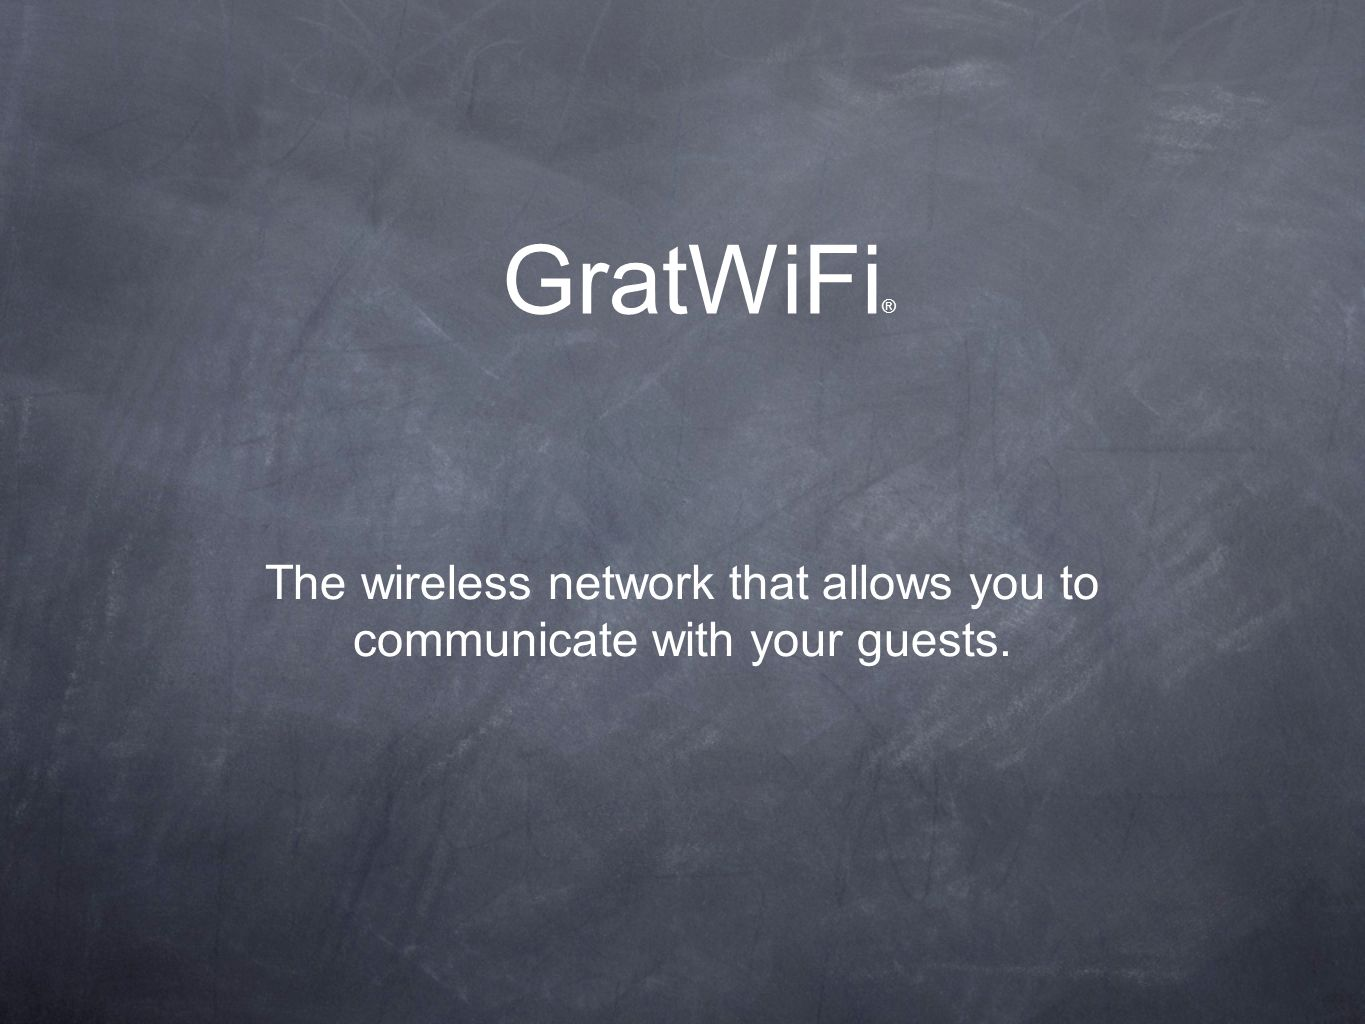 The wireless network that allows you to communicate with your guests.